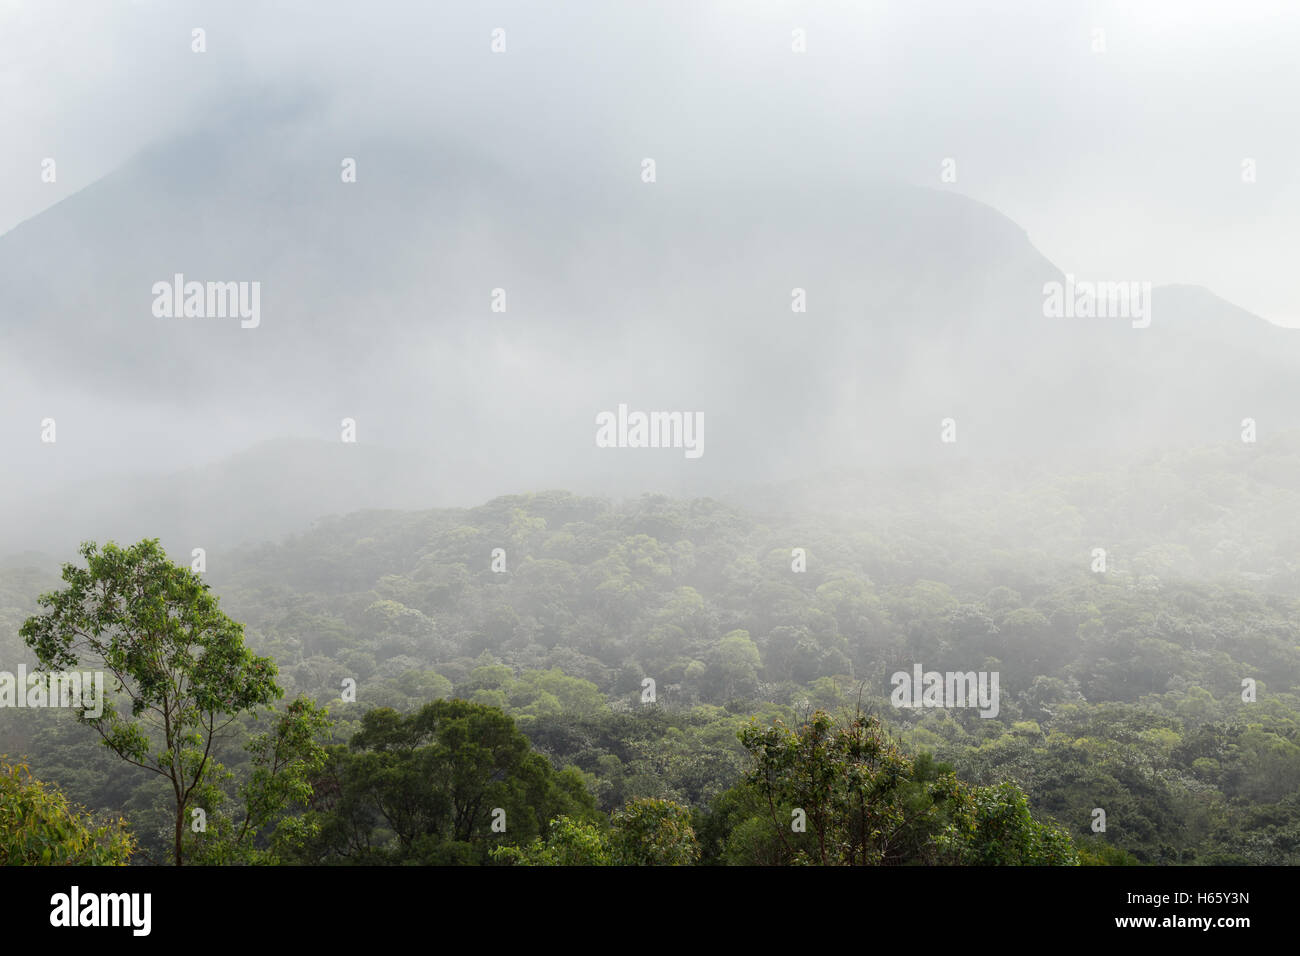 Cloudy view of lush forest and mountain on the Lantau Island in Hong Kong, China. - Stock Image